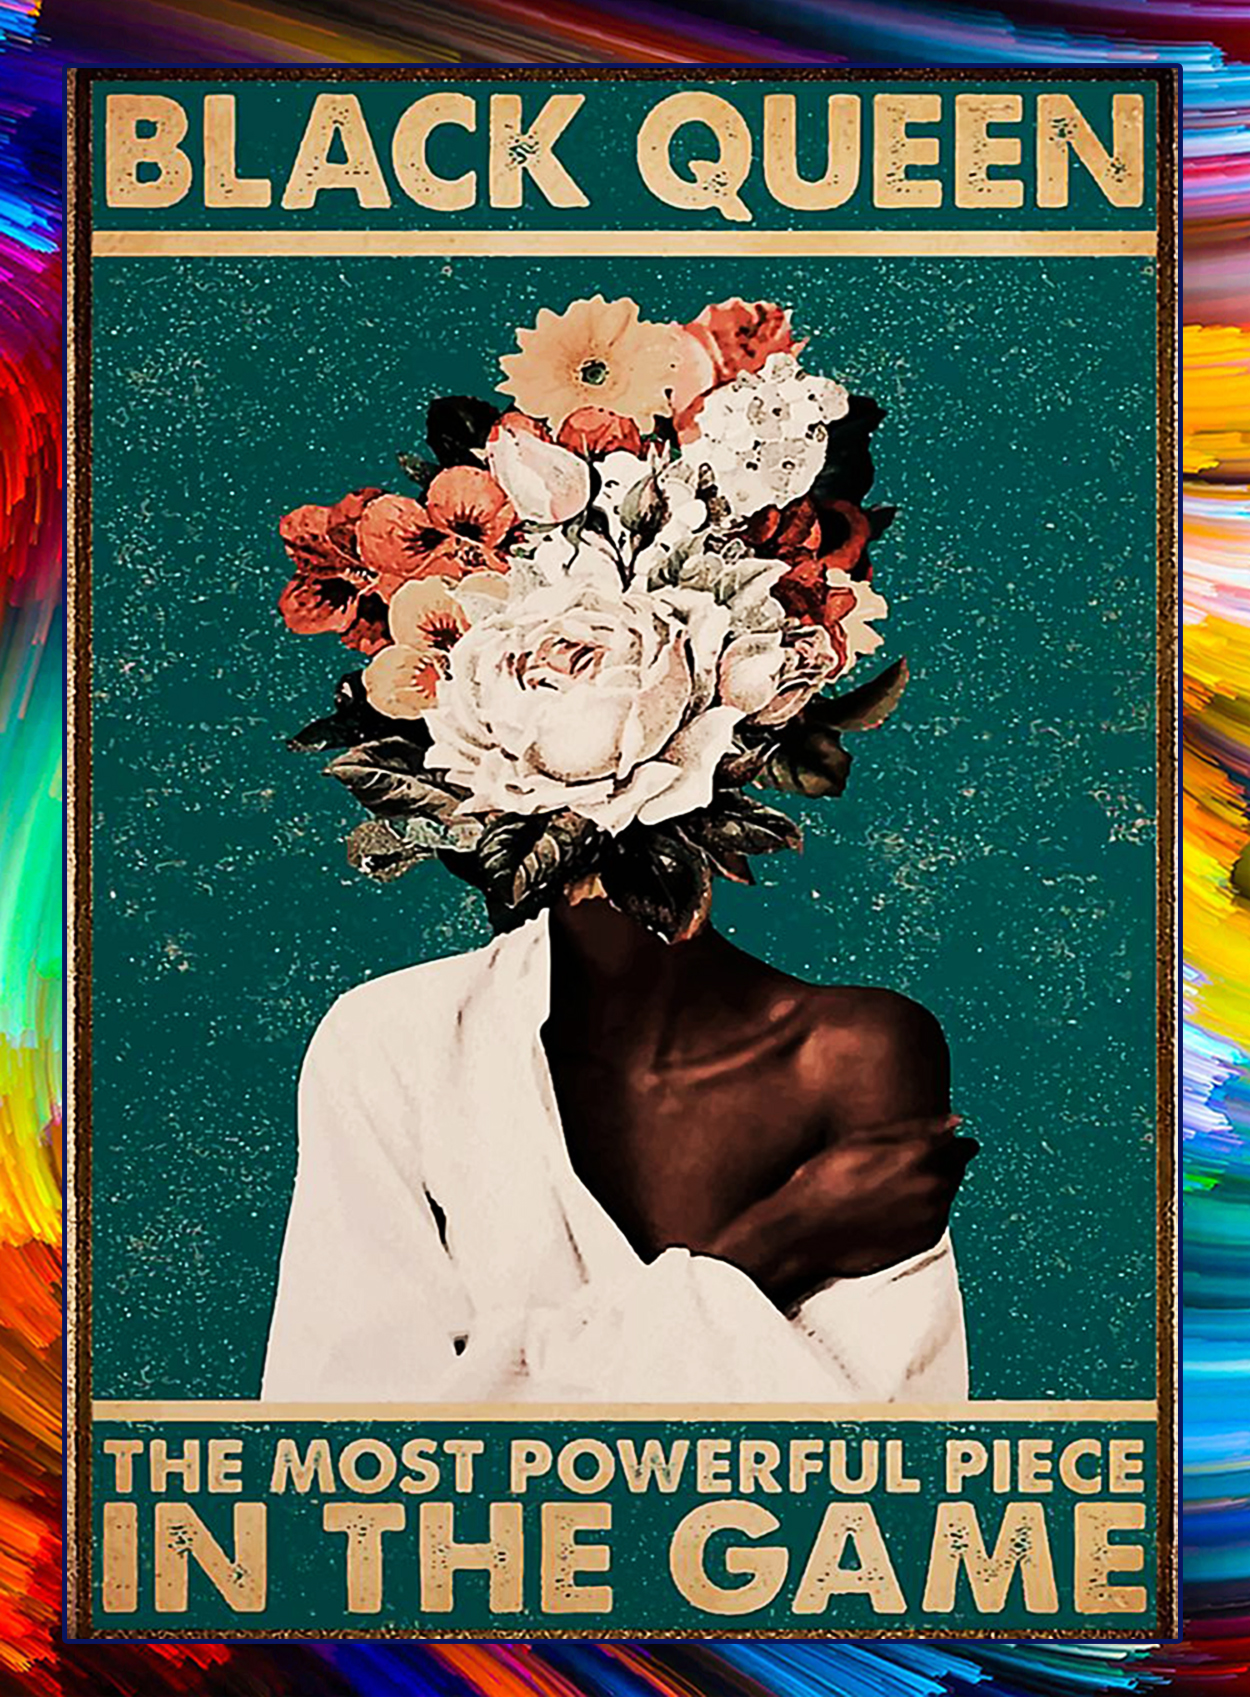 Pot head black queen the most powerful piece in the game poster - A2